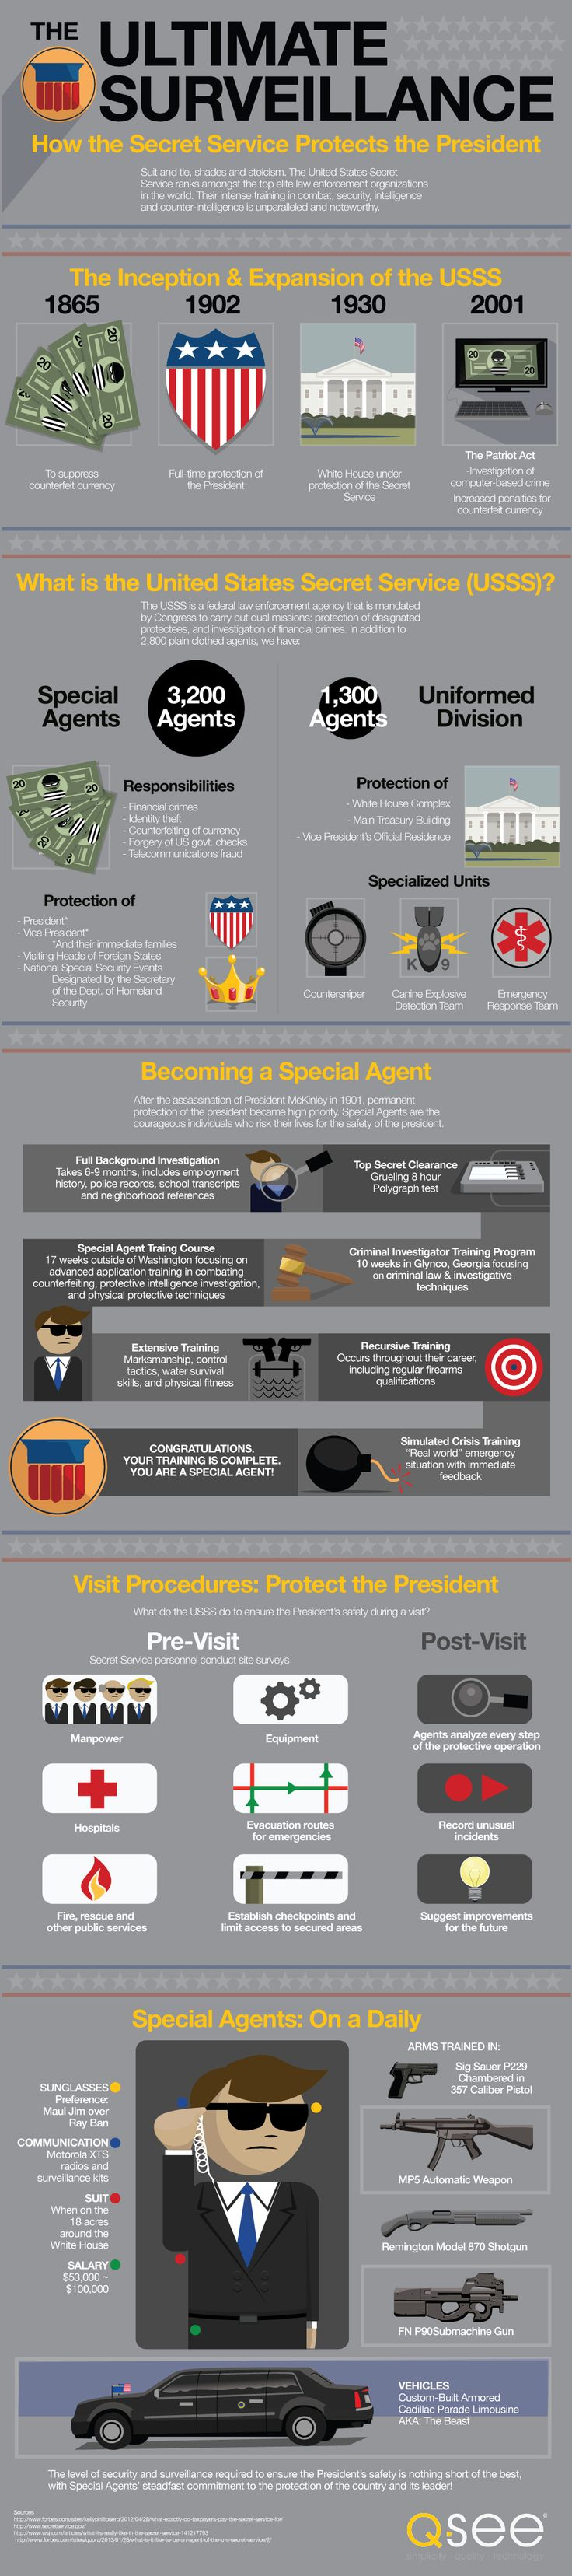 What does it take to become a member of one of the most elite law enforcement agencies in the entire United States? Specialized weapons training, tactics, and analysis are all important aspects of becoming a special agent for the United States Secret Service (USSS). However, protecting the president and important government assets involves a bit more than a cool suit, a bullet-proof vehicle, and a reliable firearm. In addition to a full background investigation and an eight-hour polygraph…